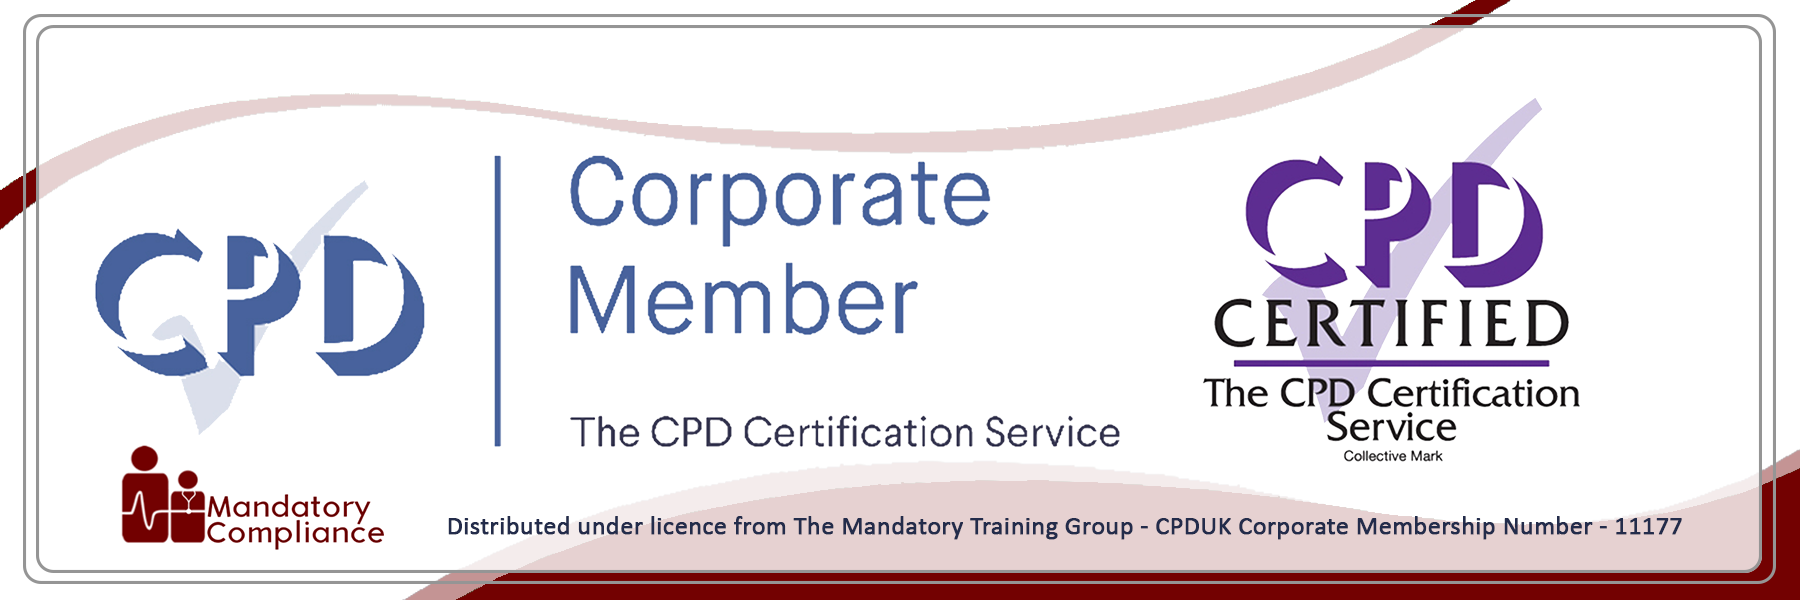 Personal Productivity - Online Training Course - CPDUK Accredited - Mandatory Compliance UK -